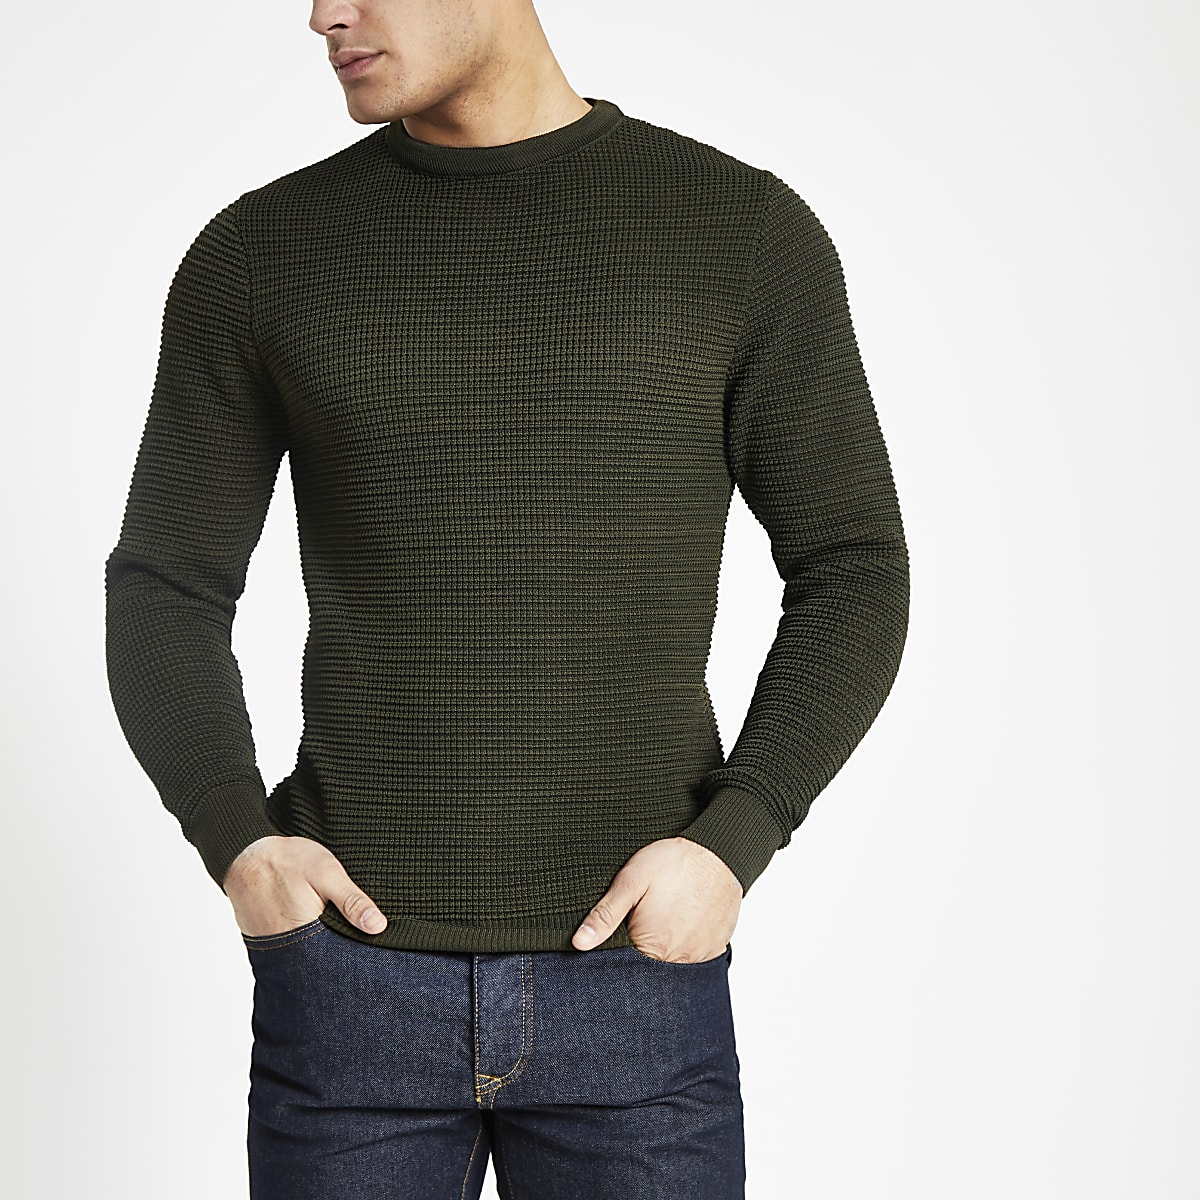 Khaki textured knit slim fit jumper